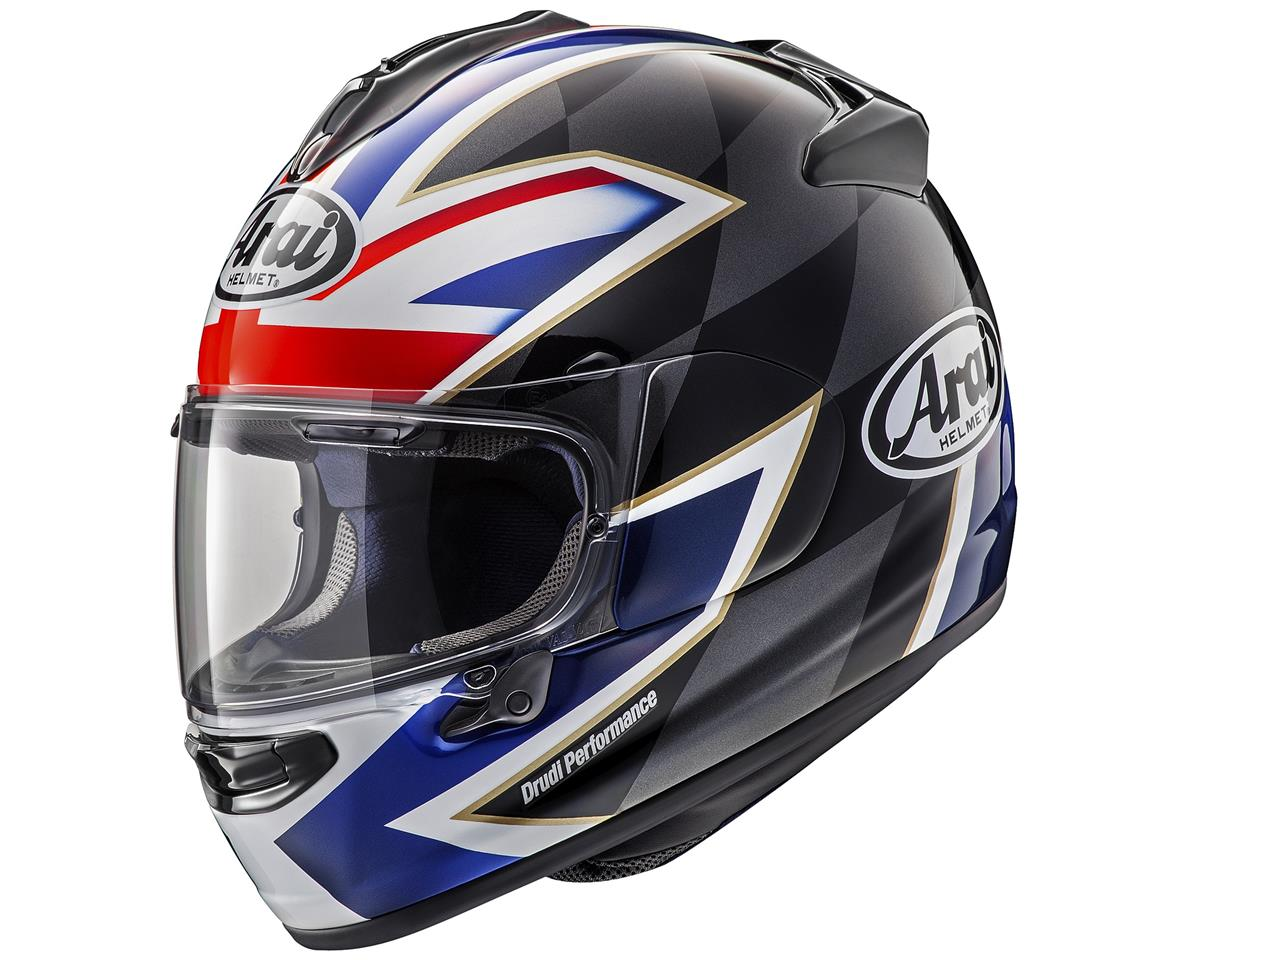 Casque ARAI Chaser-X League UK taille XS